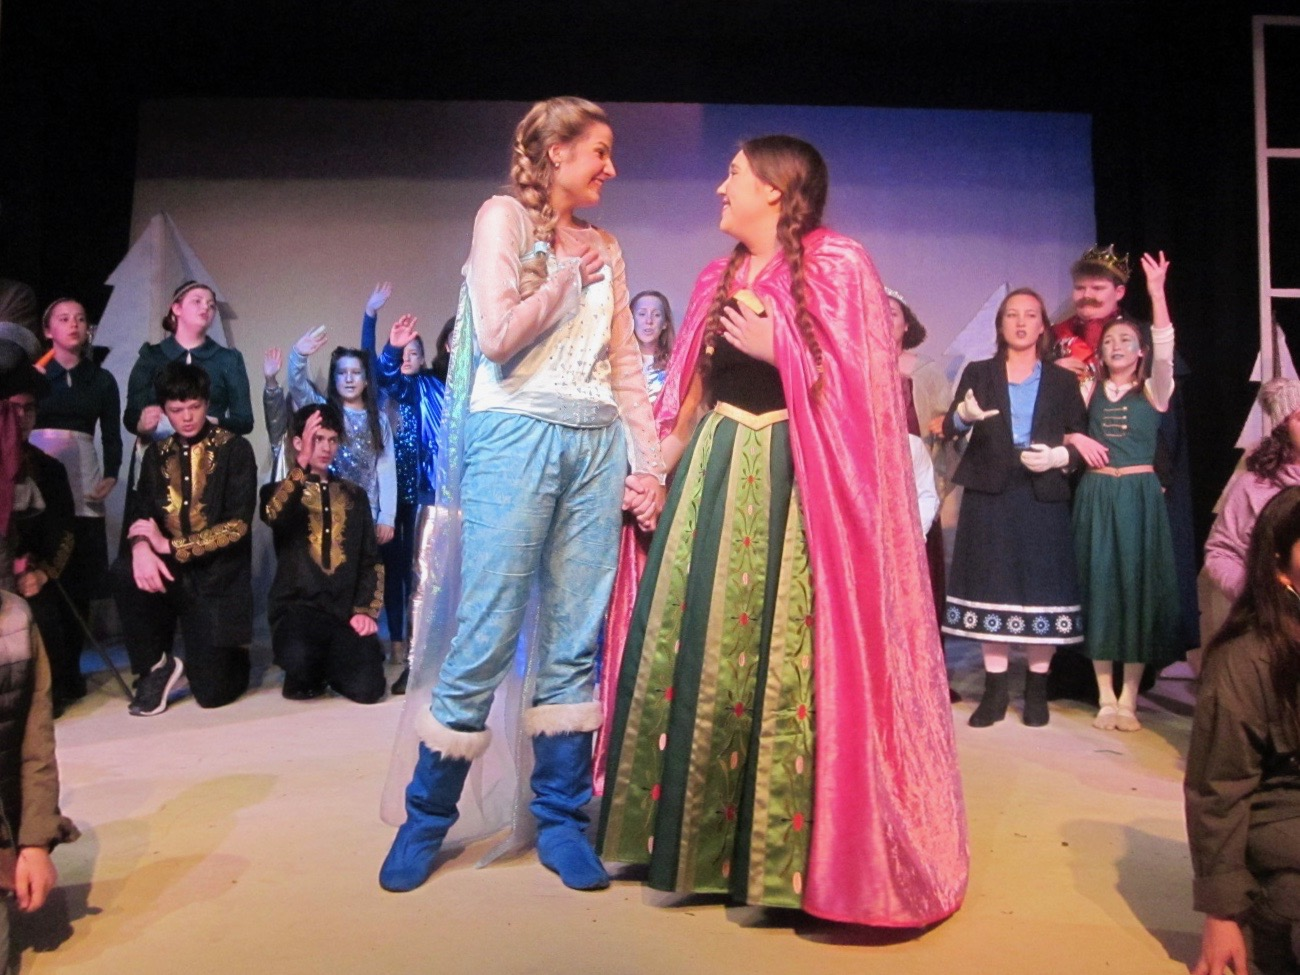 REVIEW: ACTA Theatre wows with 'Frozen Junior'